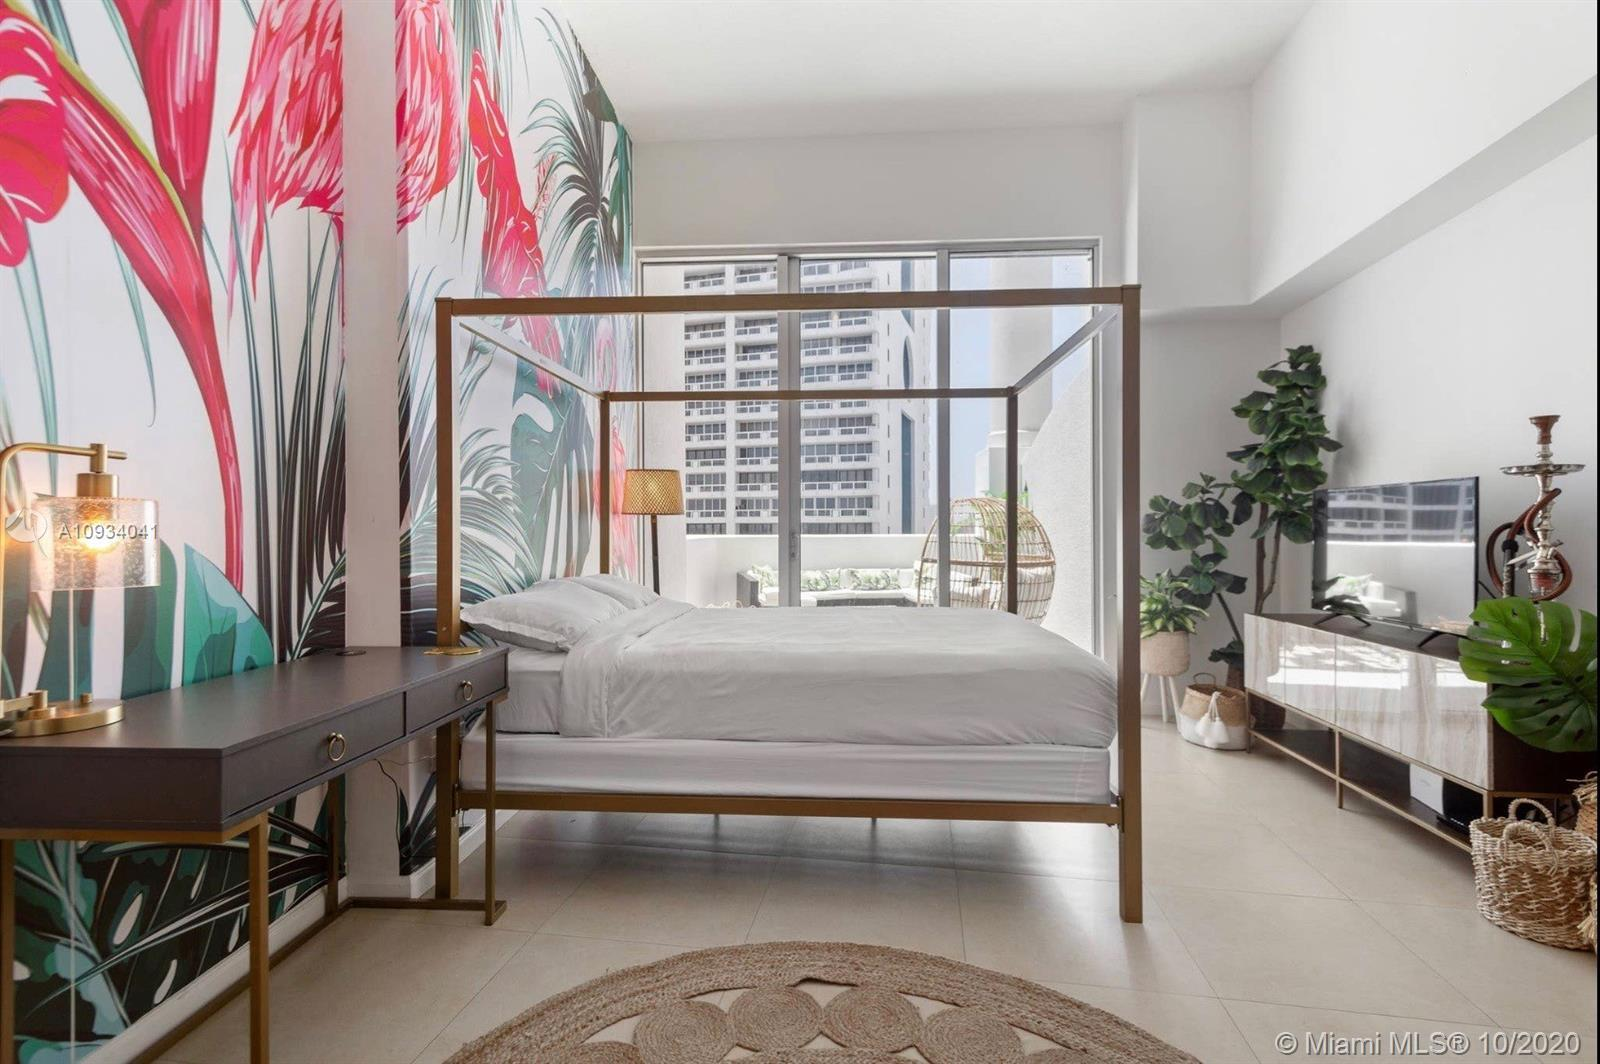 Welcome to the new standard of luxury in Edgewater! Upon entry to this fully furnished, Miami chic S